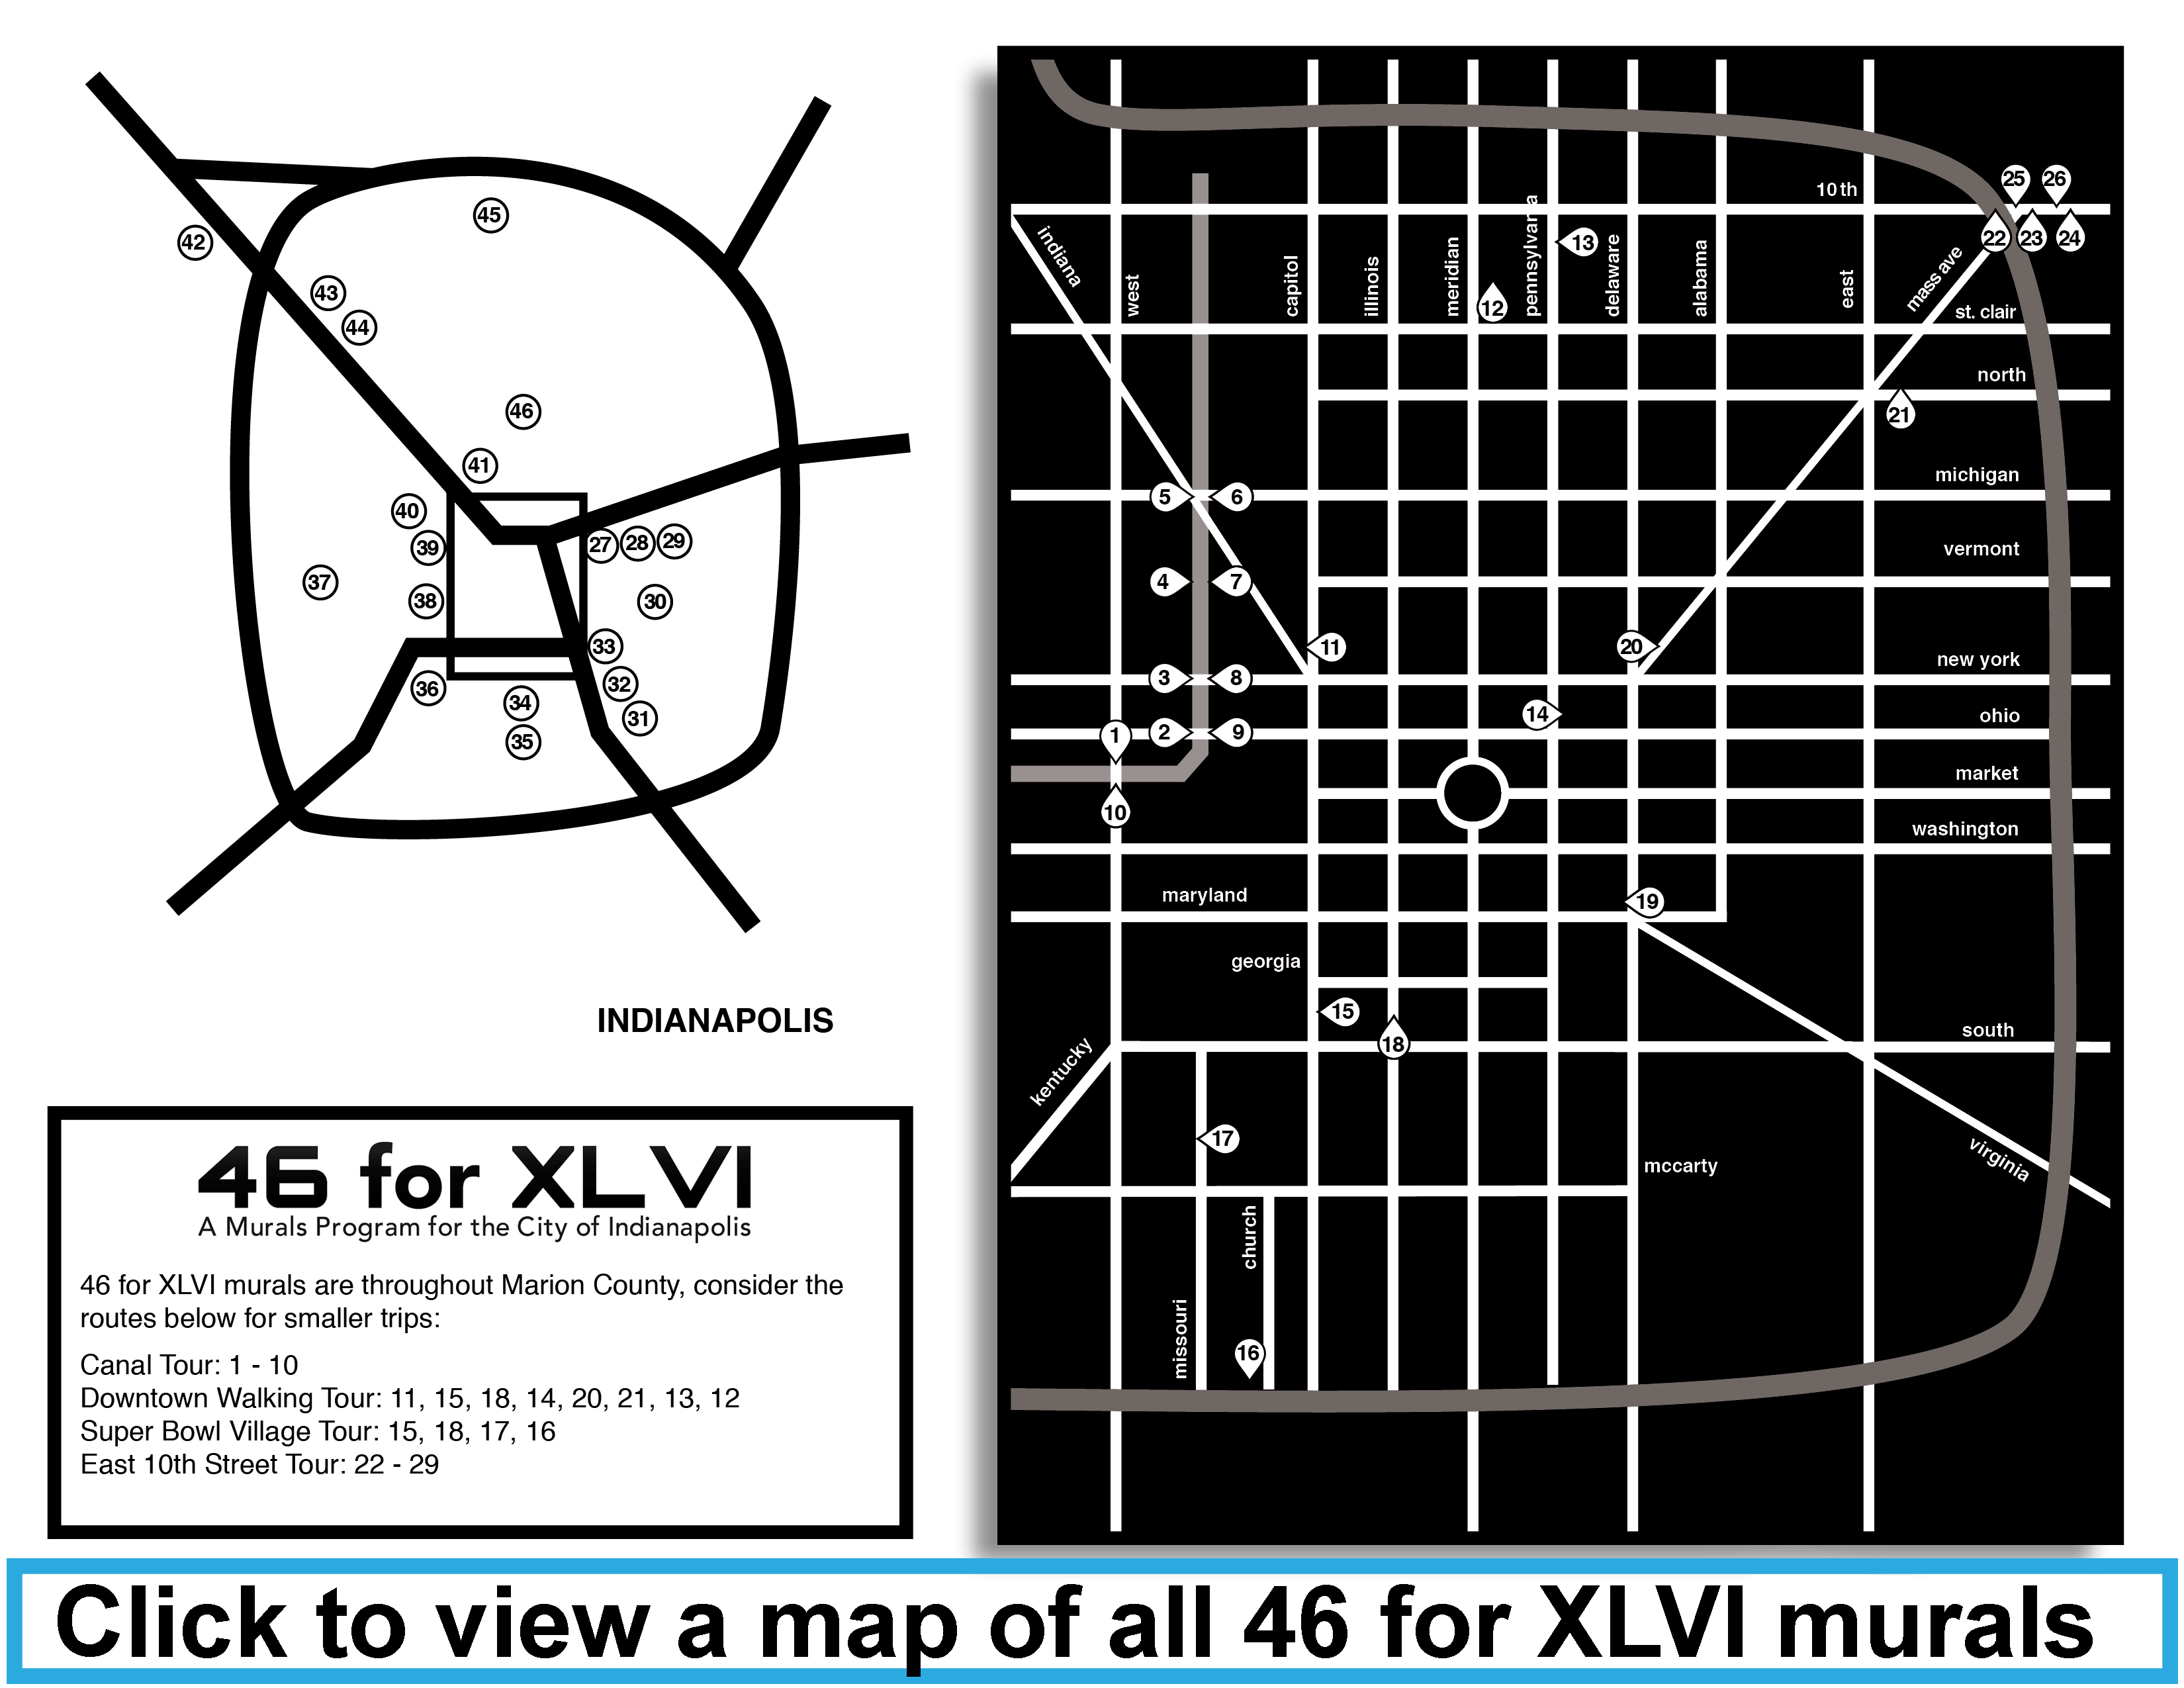 Click to view 46 for XLVI map